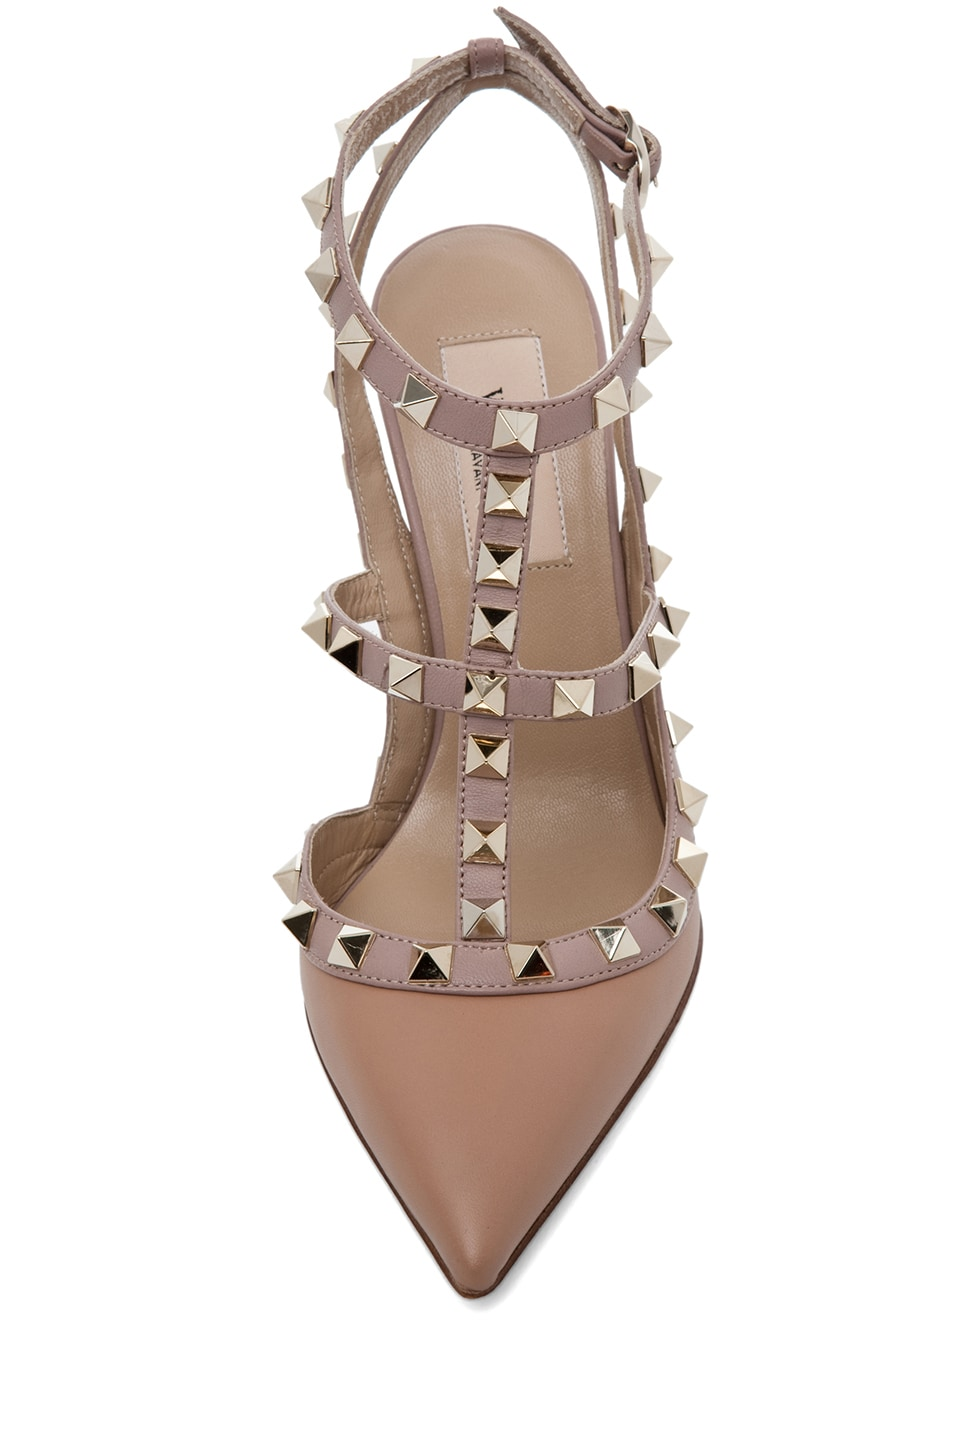 Image 4 of Valentino Rockstud Nappa Leather Sling Back T.100 in Hazelnut & Nude & Platinum